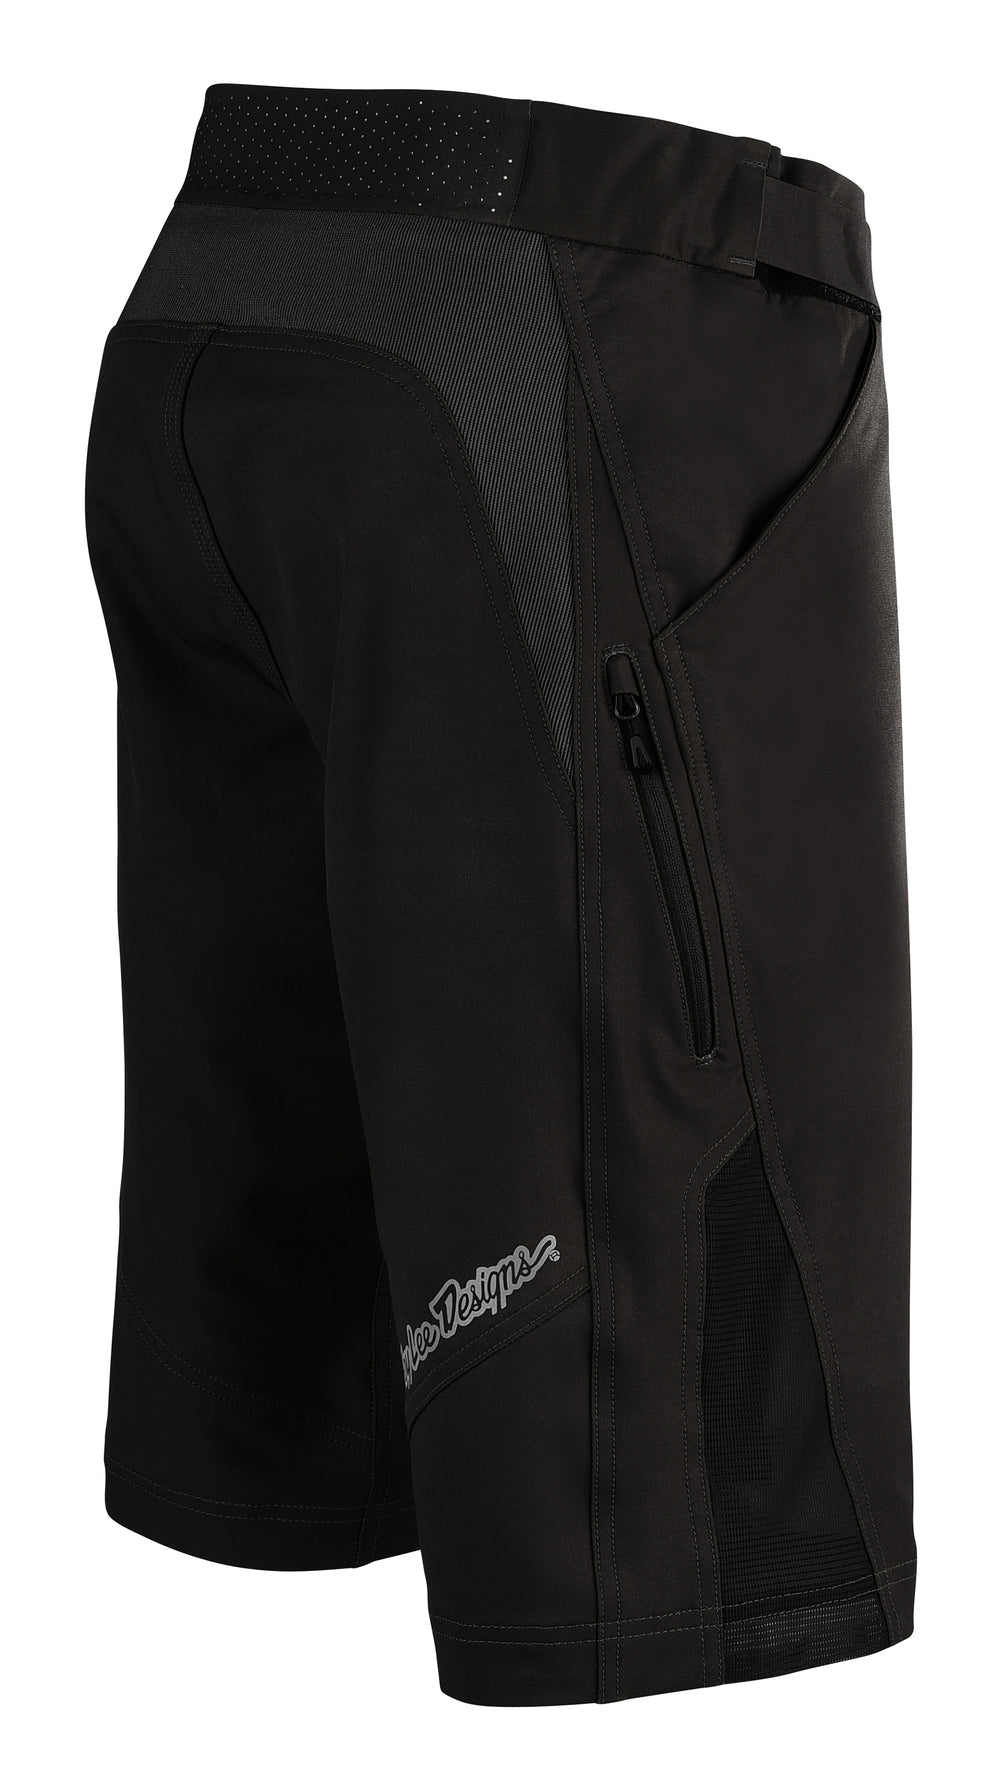 RUCKUS SHORT W/LINER SOLID BLACK